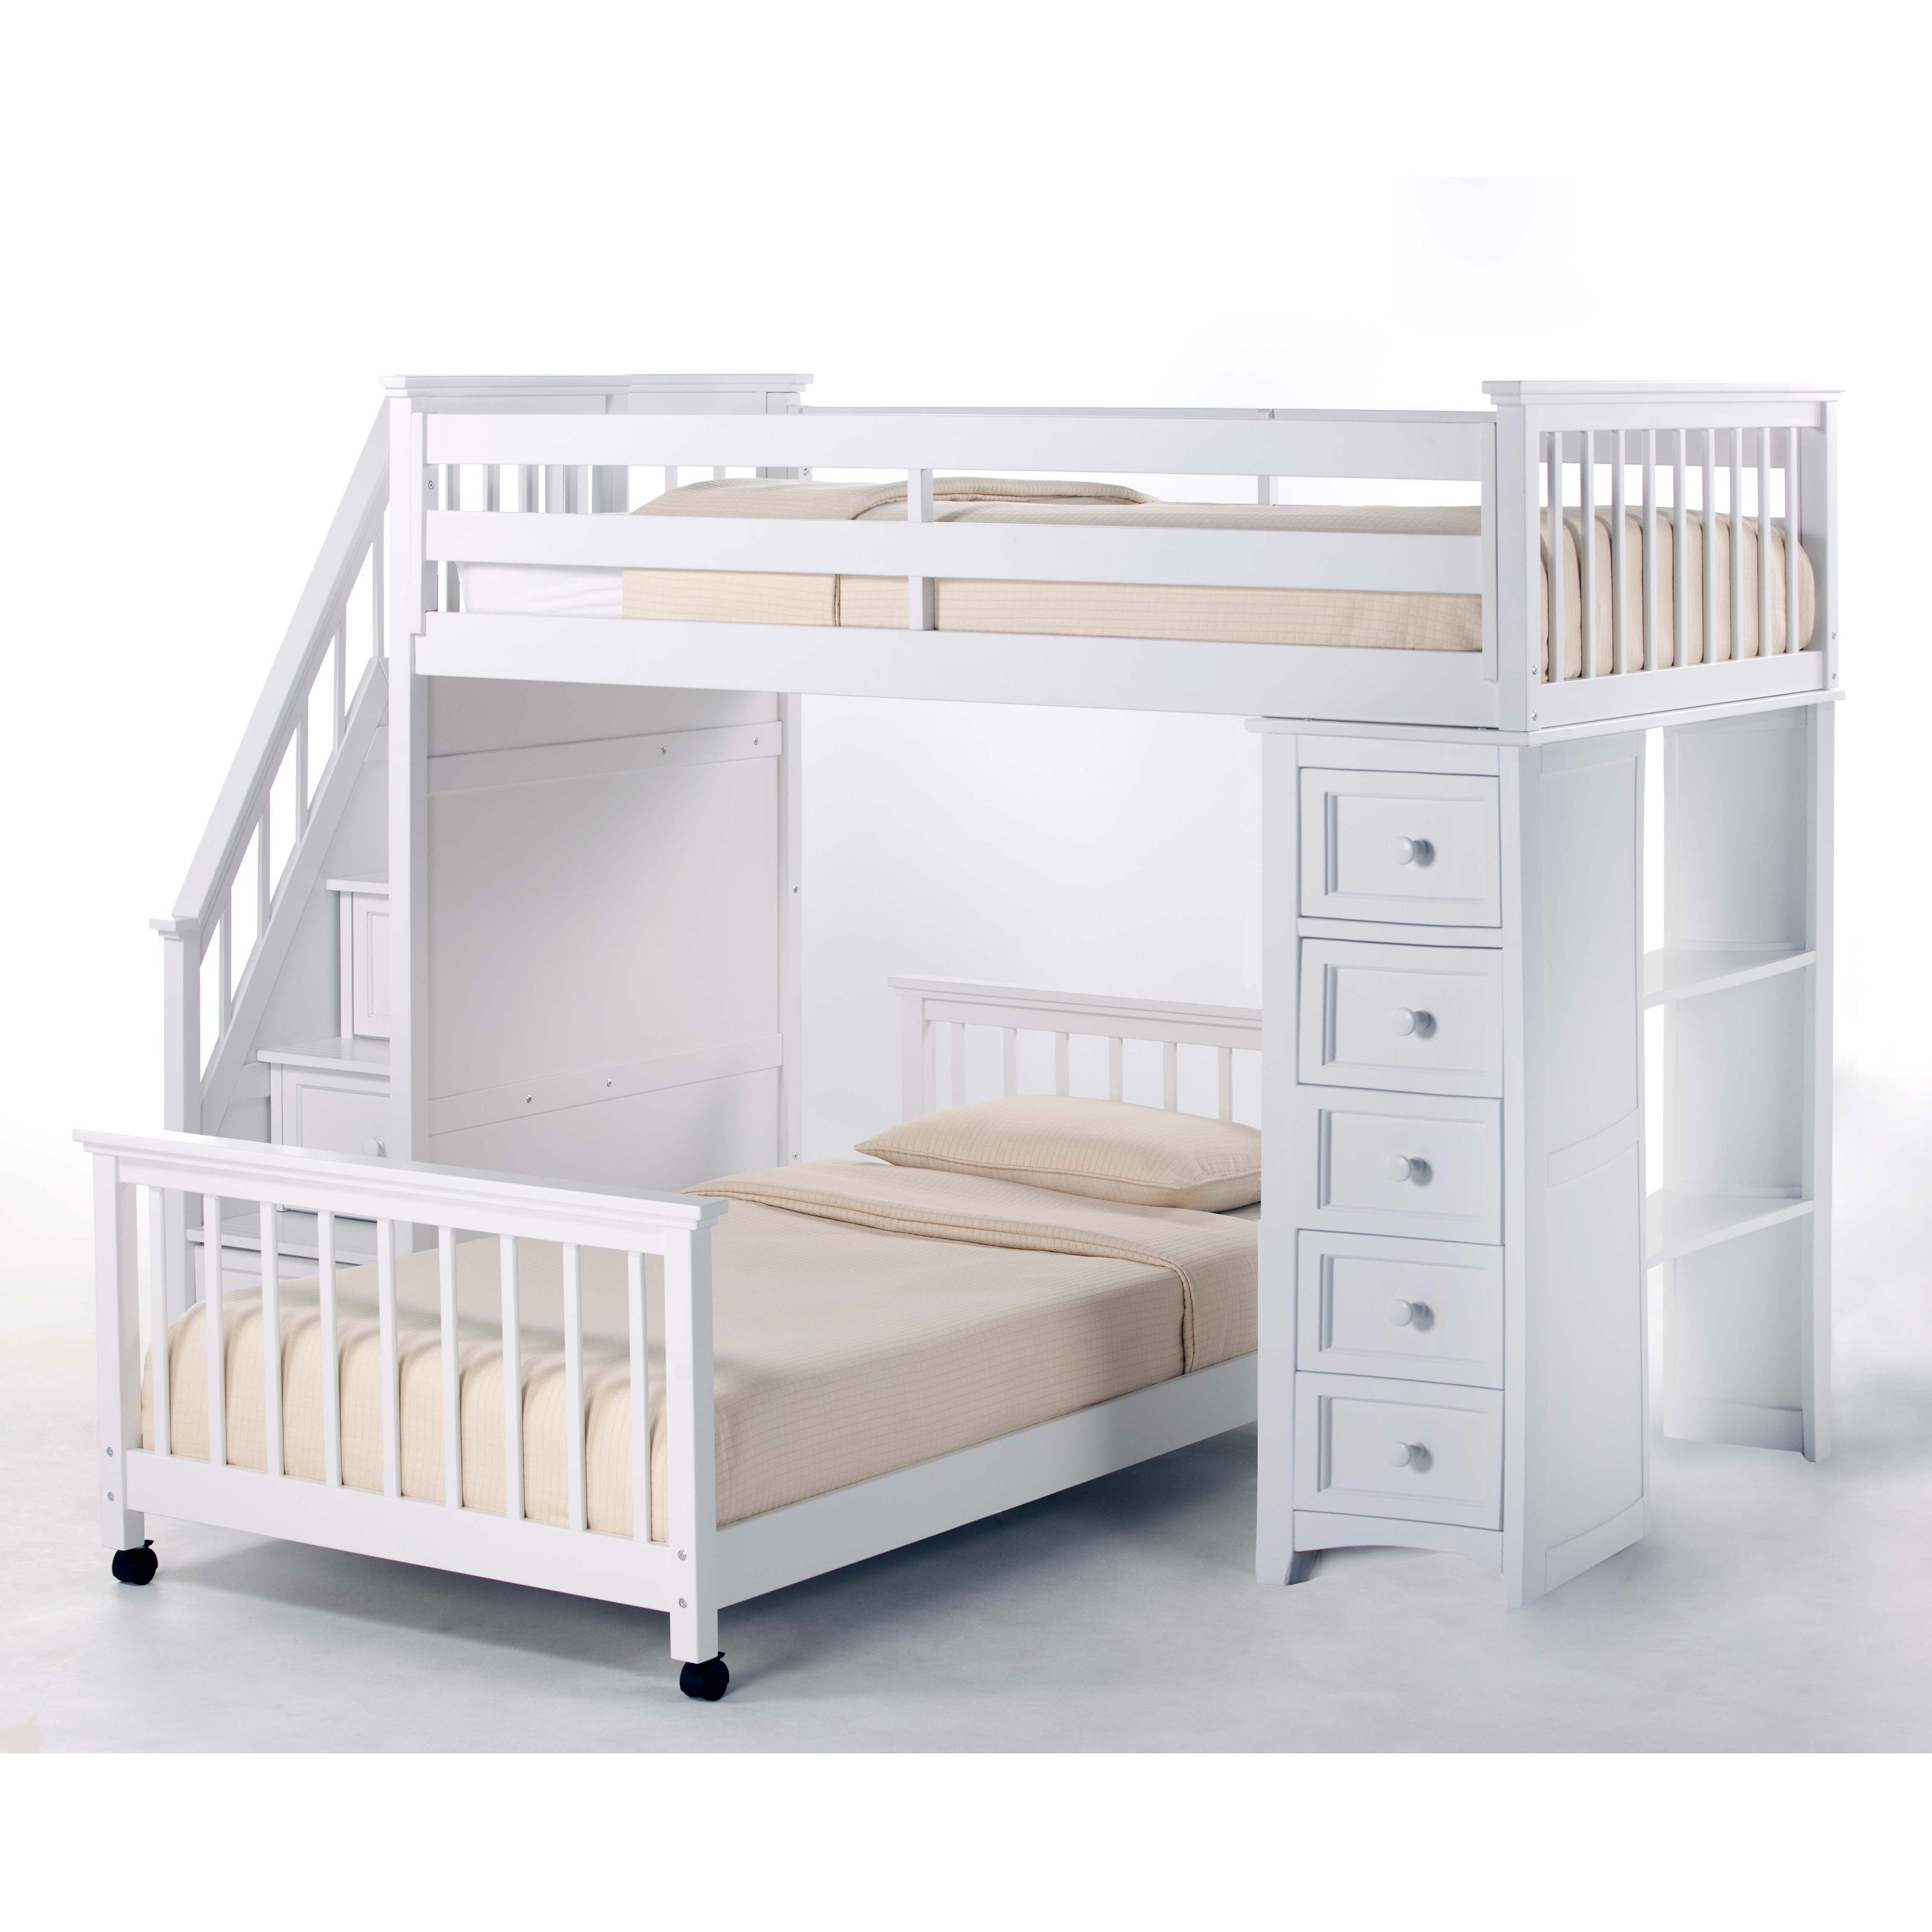 Amazing Canwood Loft Bed | Comfy Canwood Whistler Junior Loft Bed White